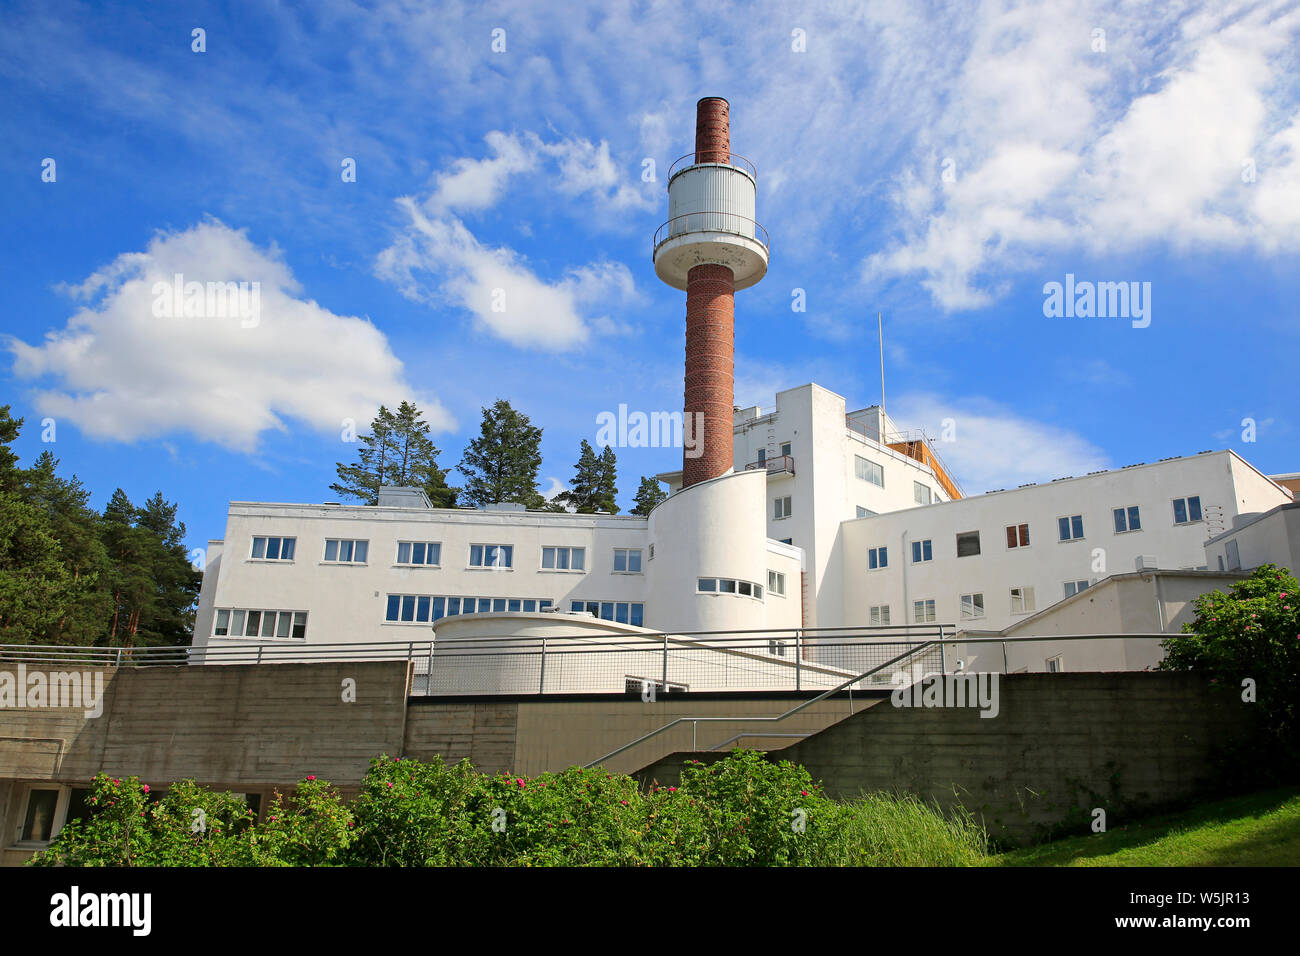 Paimio Sanatorium, designed by Finnish architect Alvar Aalto and completed 1933, on a sunny day of summer. Paimio, Finland. June 21, 2019. Stock Photo